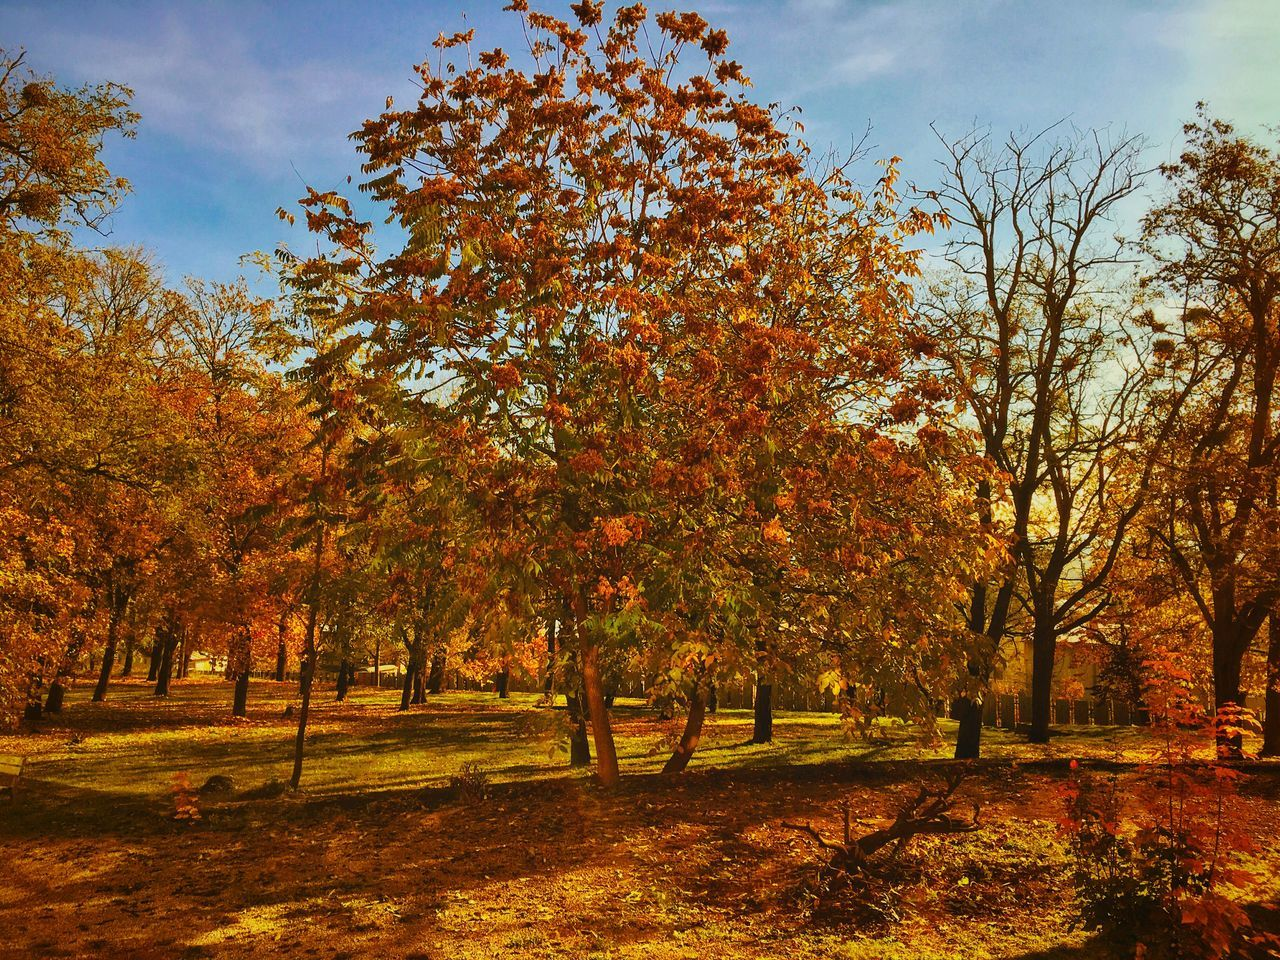 tree, autumn, nature, change, tranquility, beauty in nature, growth, tranquil scene, branch, no people, outdoors, scenics, sky, leaf, landscape, day